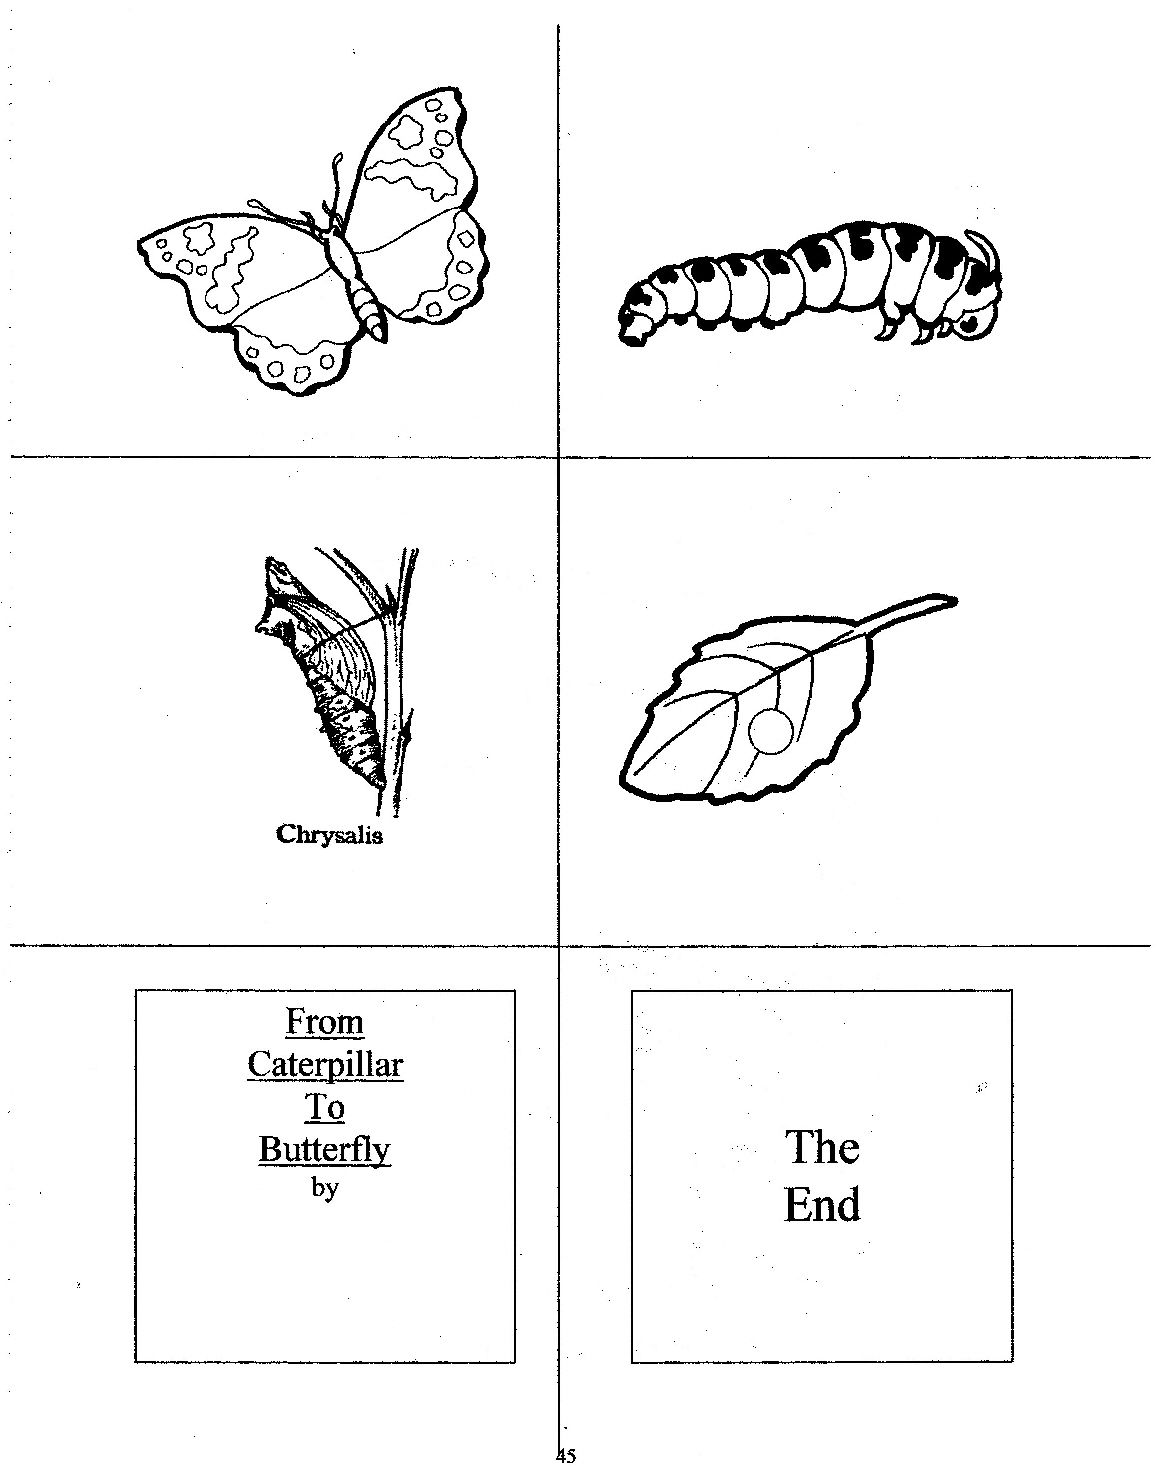 Children Can Create Their Own Caterpillar To Butterfly Books By Cutting Apart The Pictures And